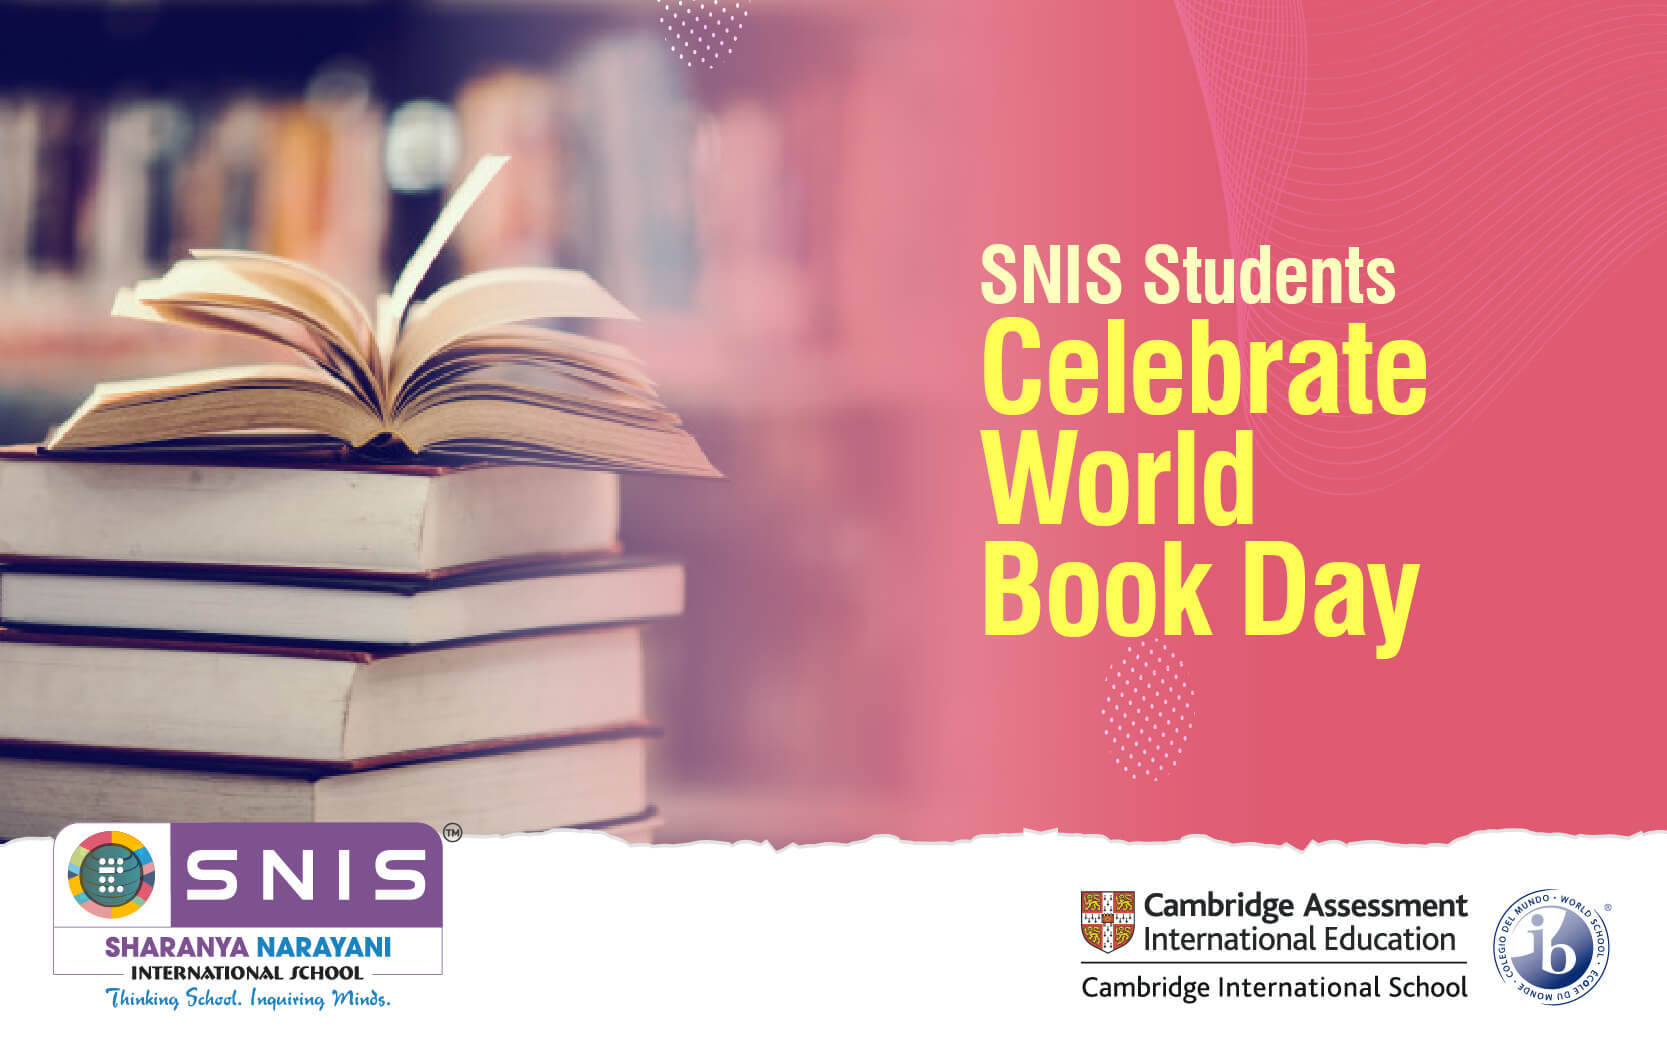 SNIS Students Celebrate World Book Day by snis Igcse schools in bangalore